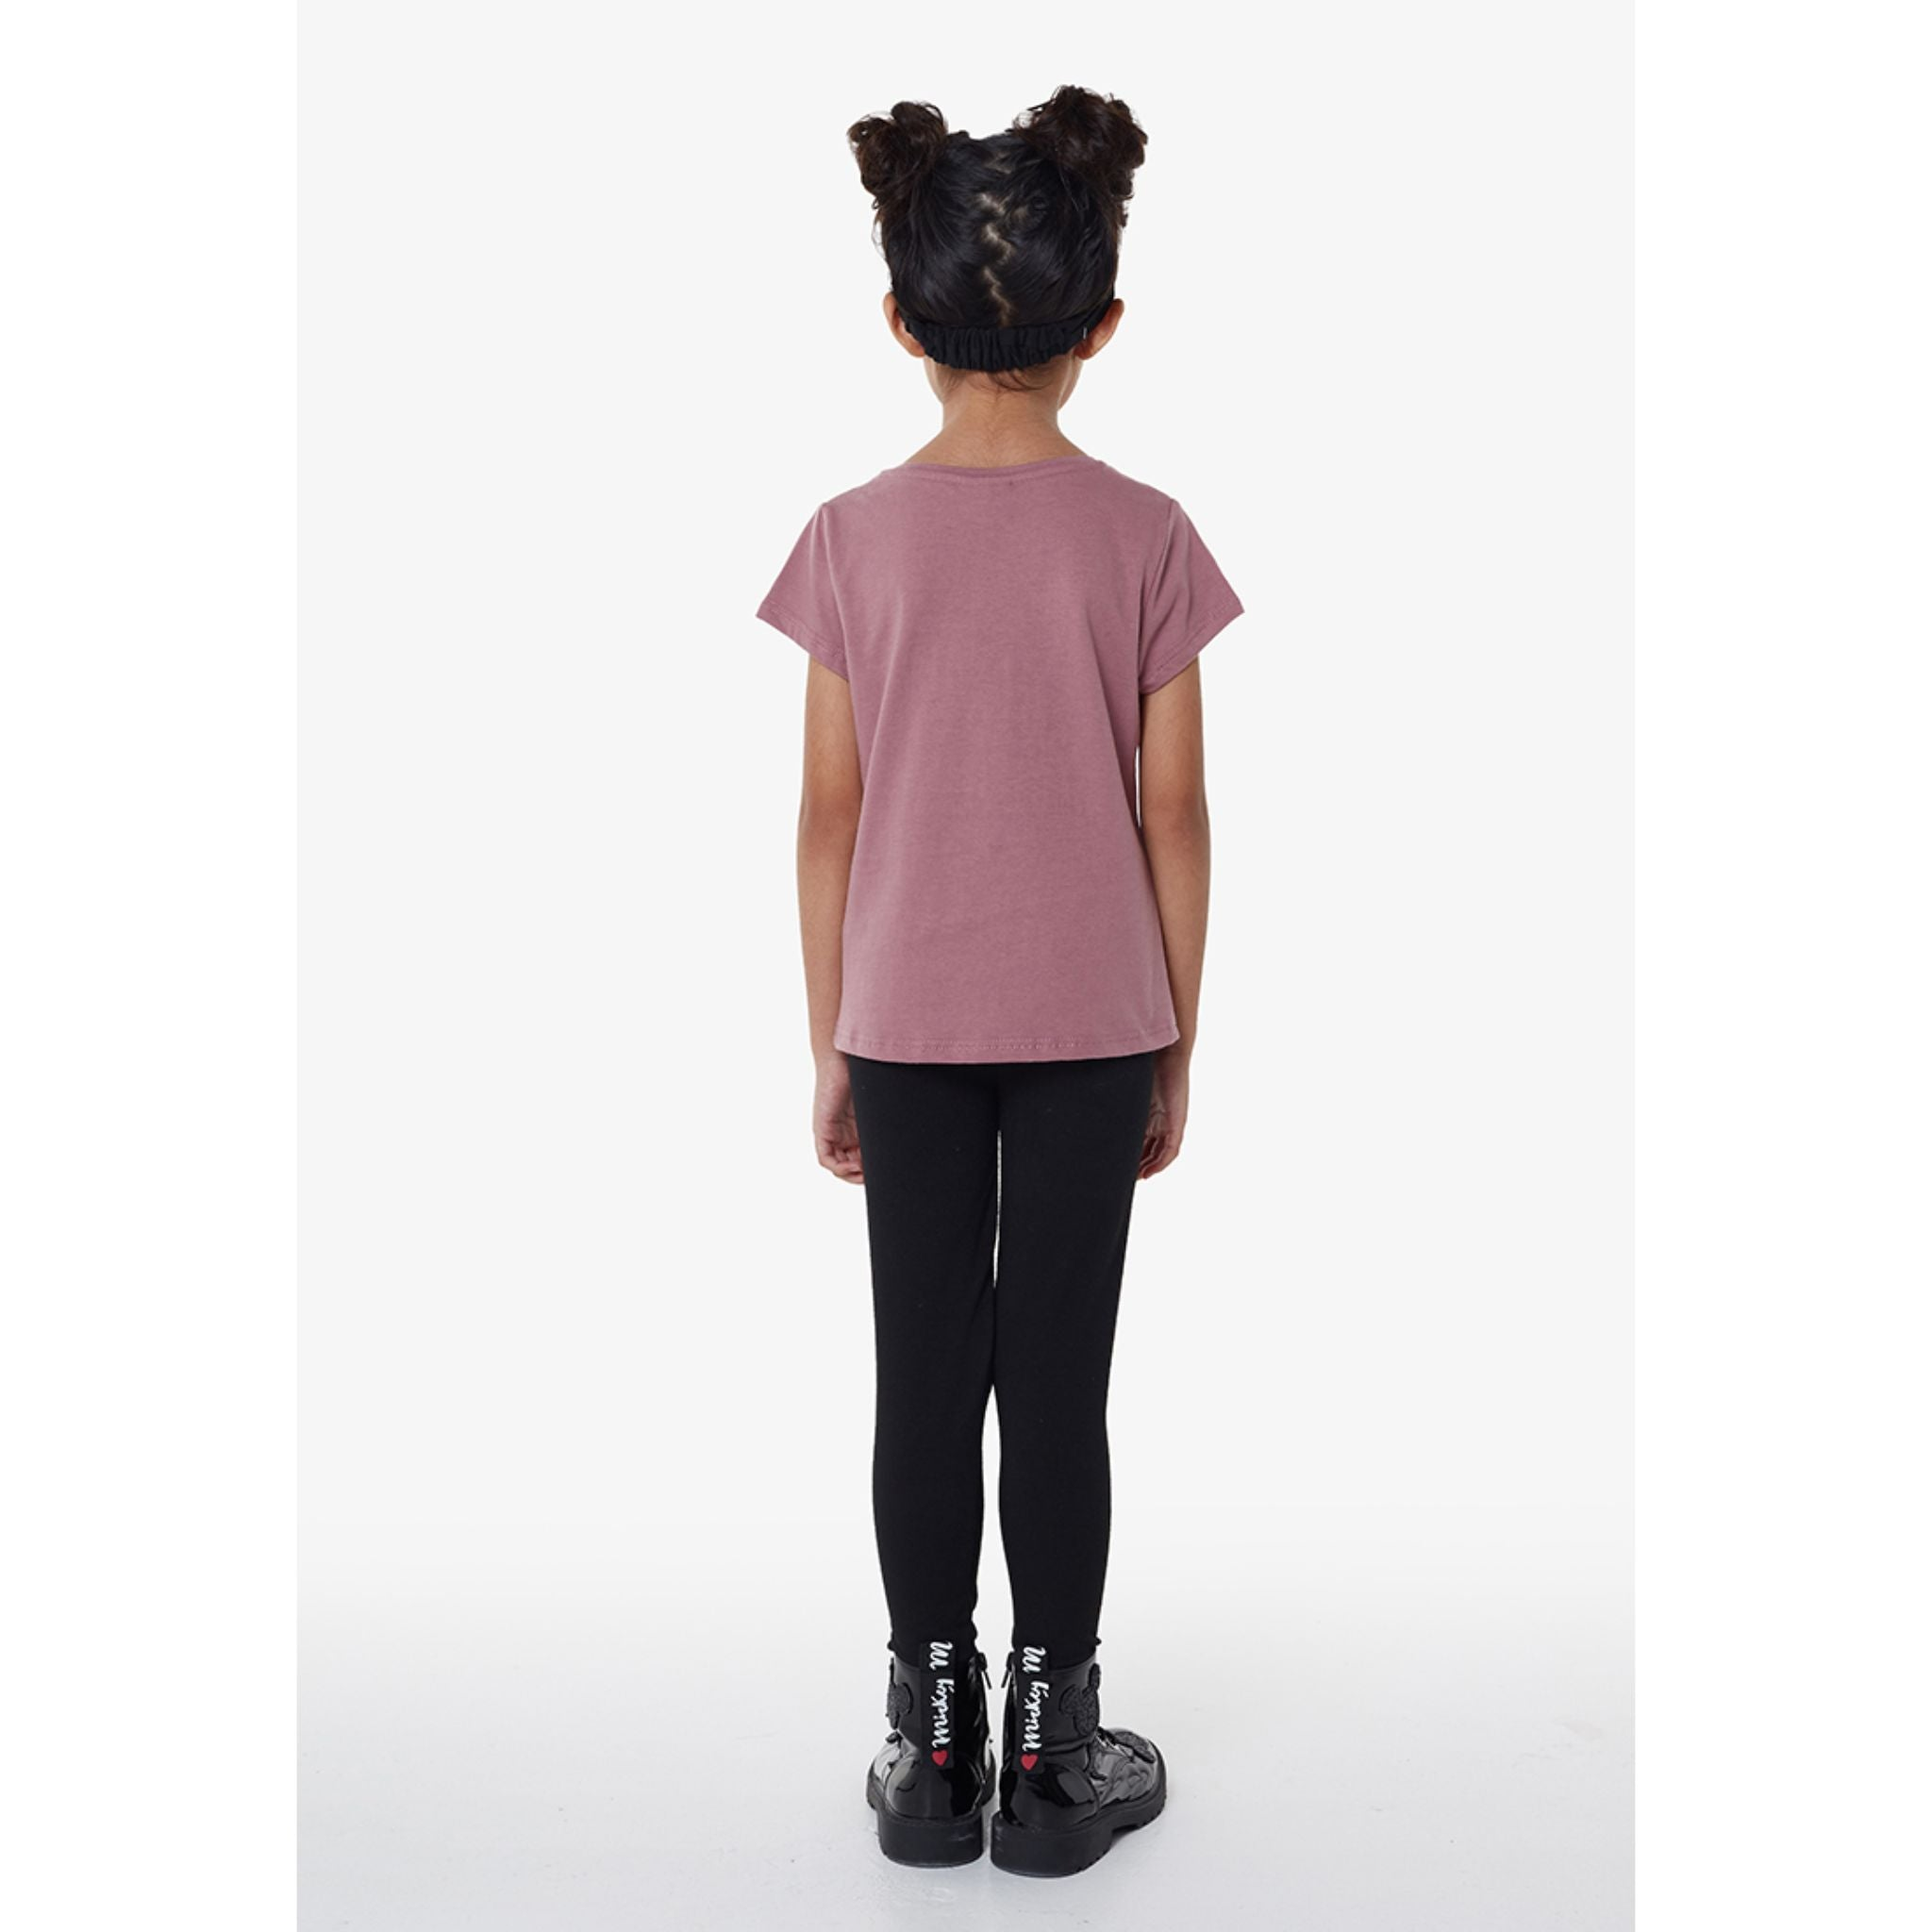 Gen Woo Leopard Embroidered T-shirt - Rose